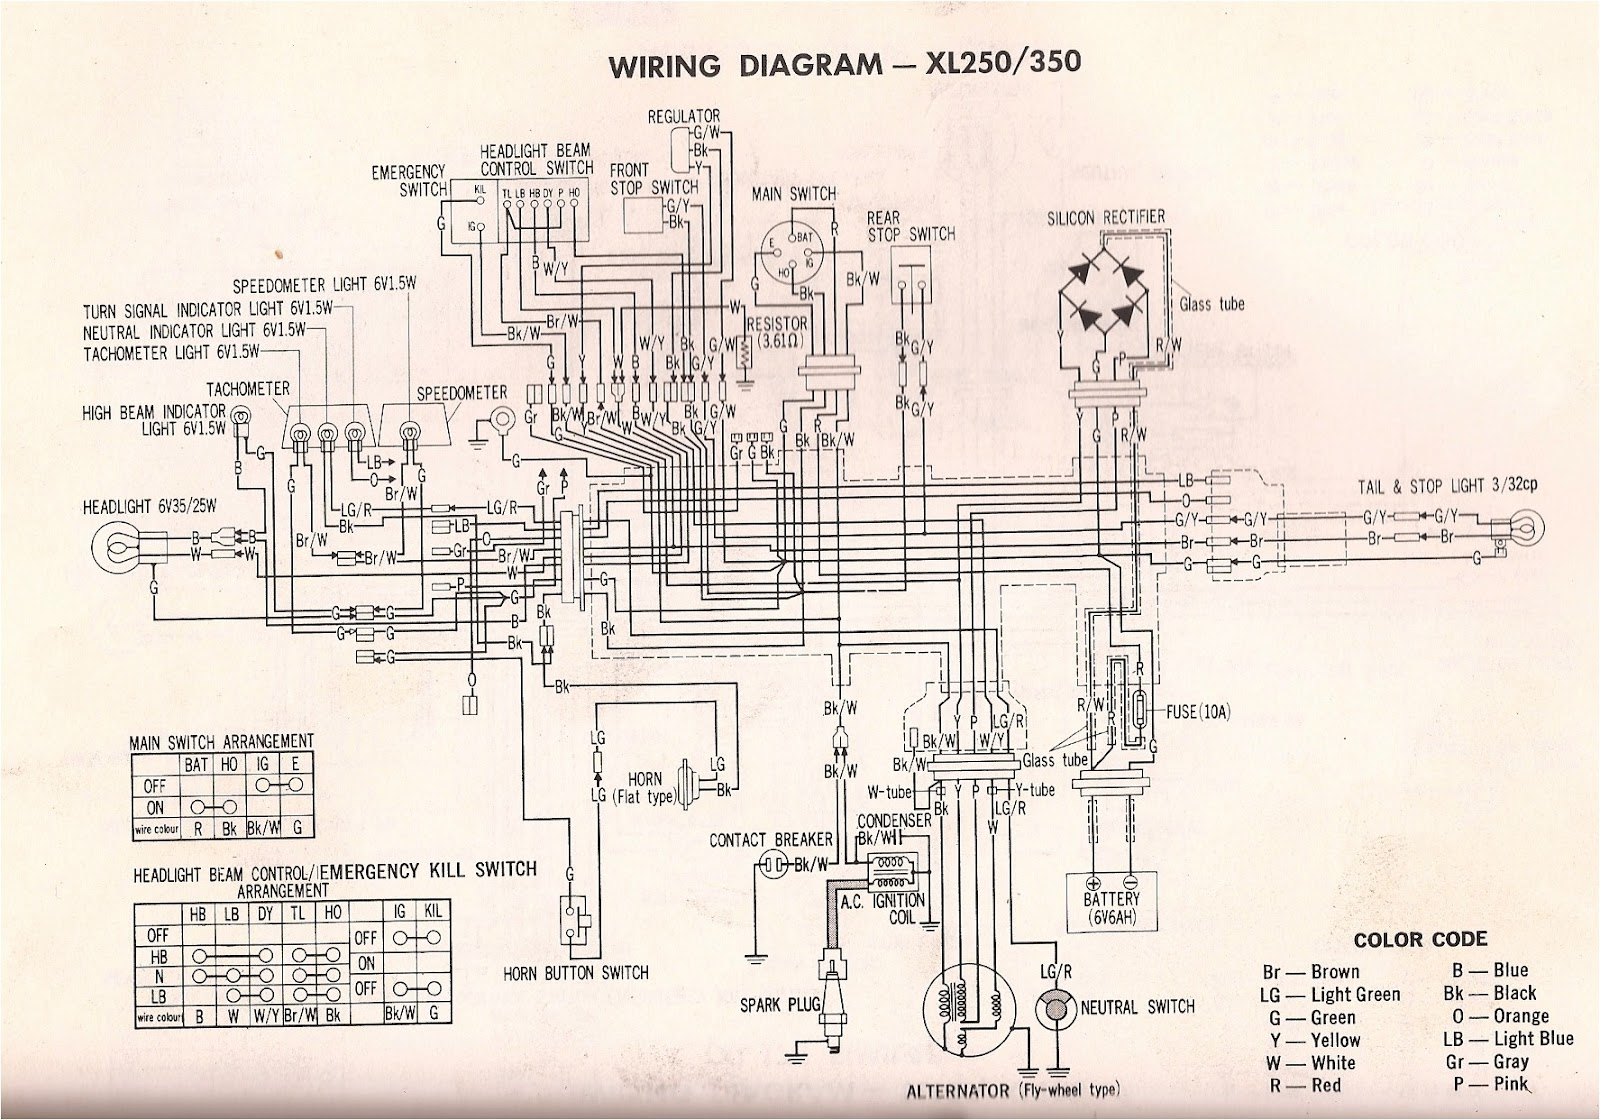 XL350+Wiring+diagram+S r4l xl350 wiring diagram (and xl250) 1975 honda cb550 wiring diagram at n-0.co